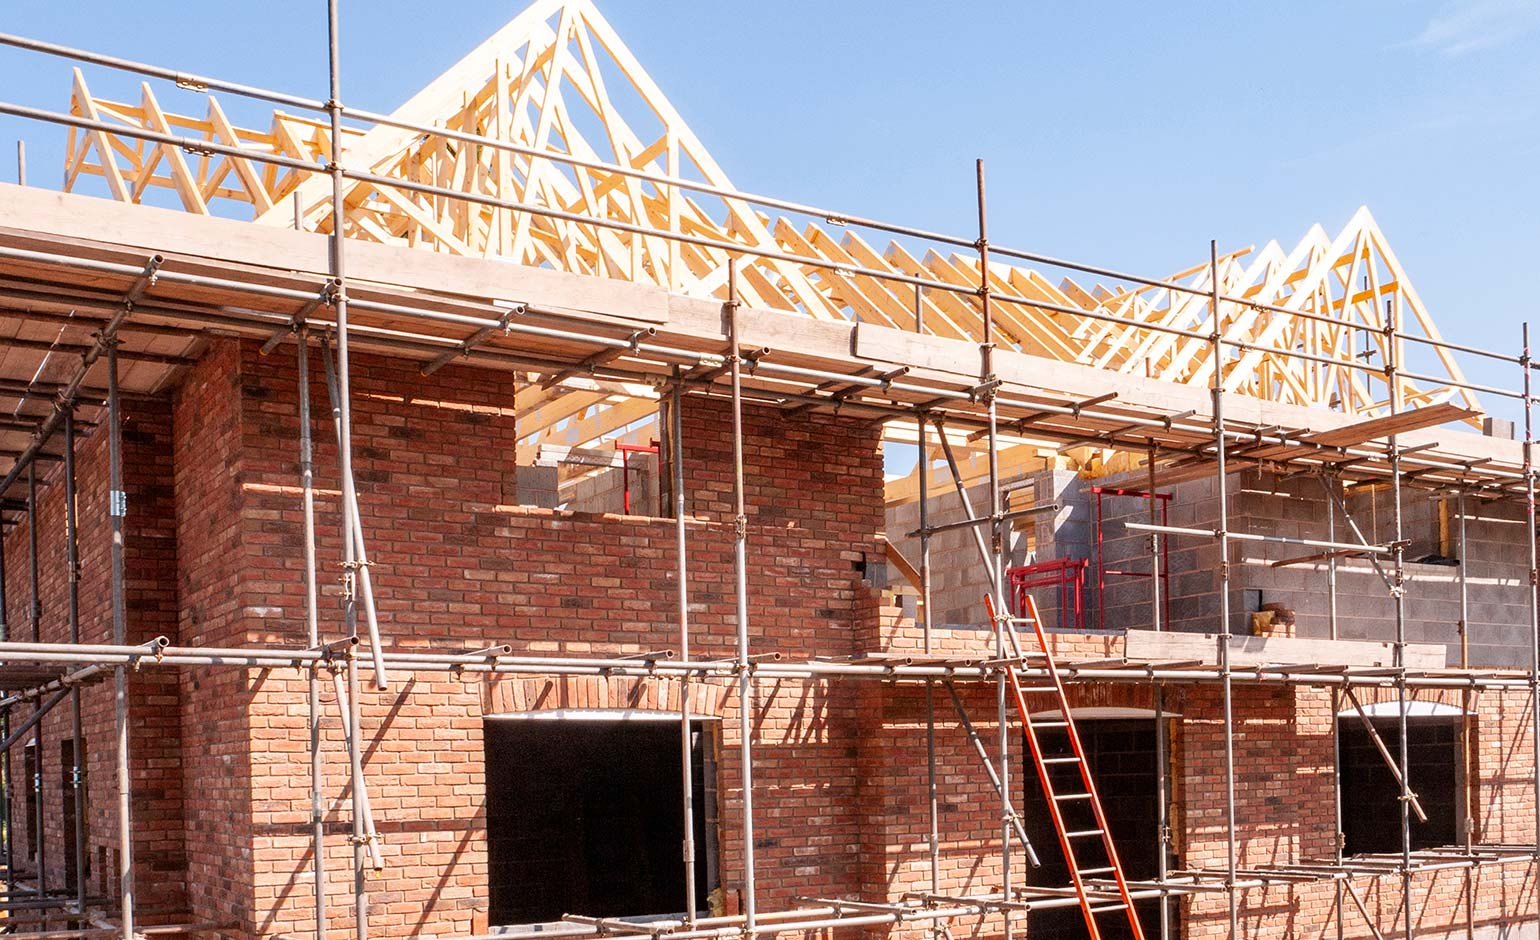 Concerns raised over proposals for extra 1,100 homes across B&NES